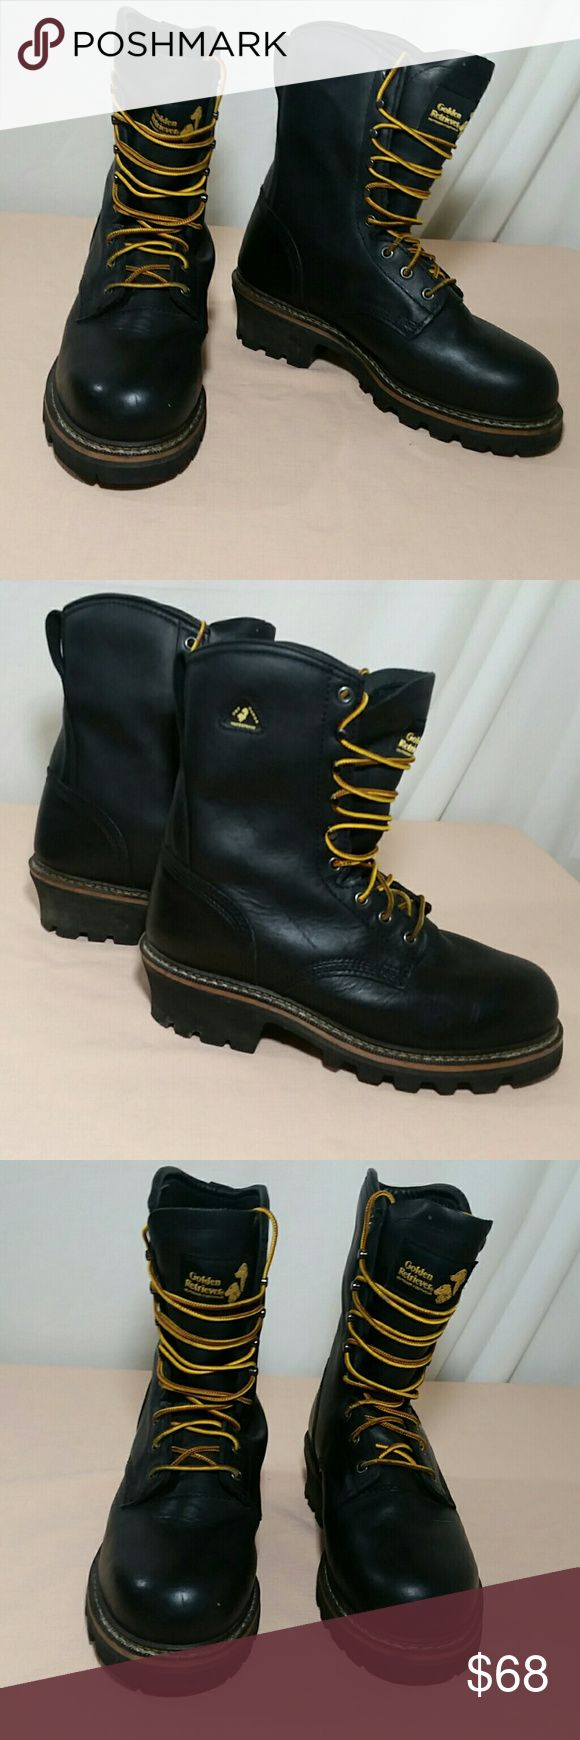 GOLDEN RETRIEVER Boots w Vibram Soles Size 8 1/2 Rugged outdoor wear GOLDEN RETRIEVER Boots.  This pair of Boots features a Vibram sole, and sturdy waterproof insulation for outdoor cold weather wear.  This pair of Boots are a size 8 1/2.  This pair of GOLDEN RETRIEVER Boots are in excellent condition. Golden Retriever Shoes Boots